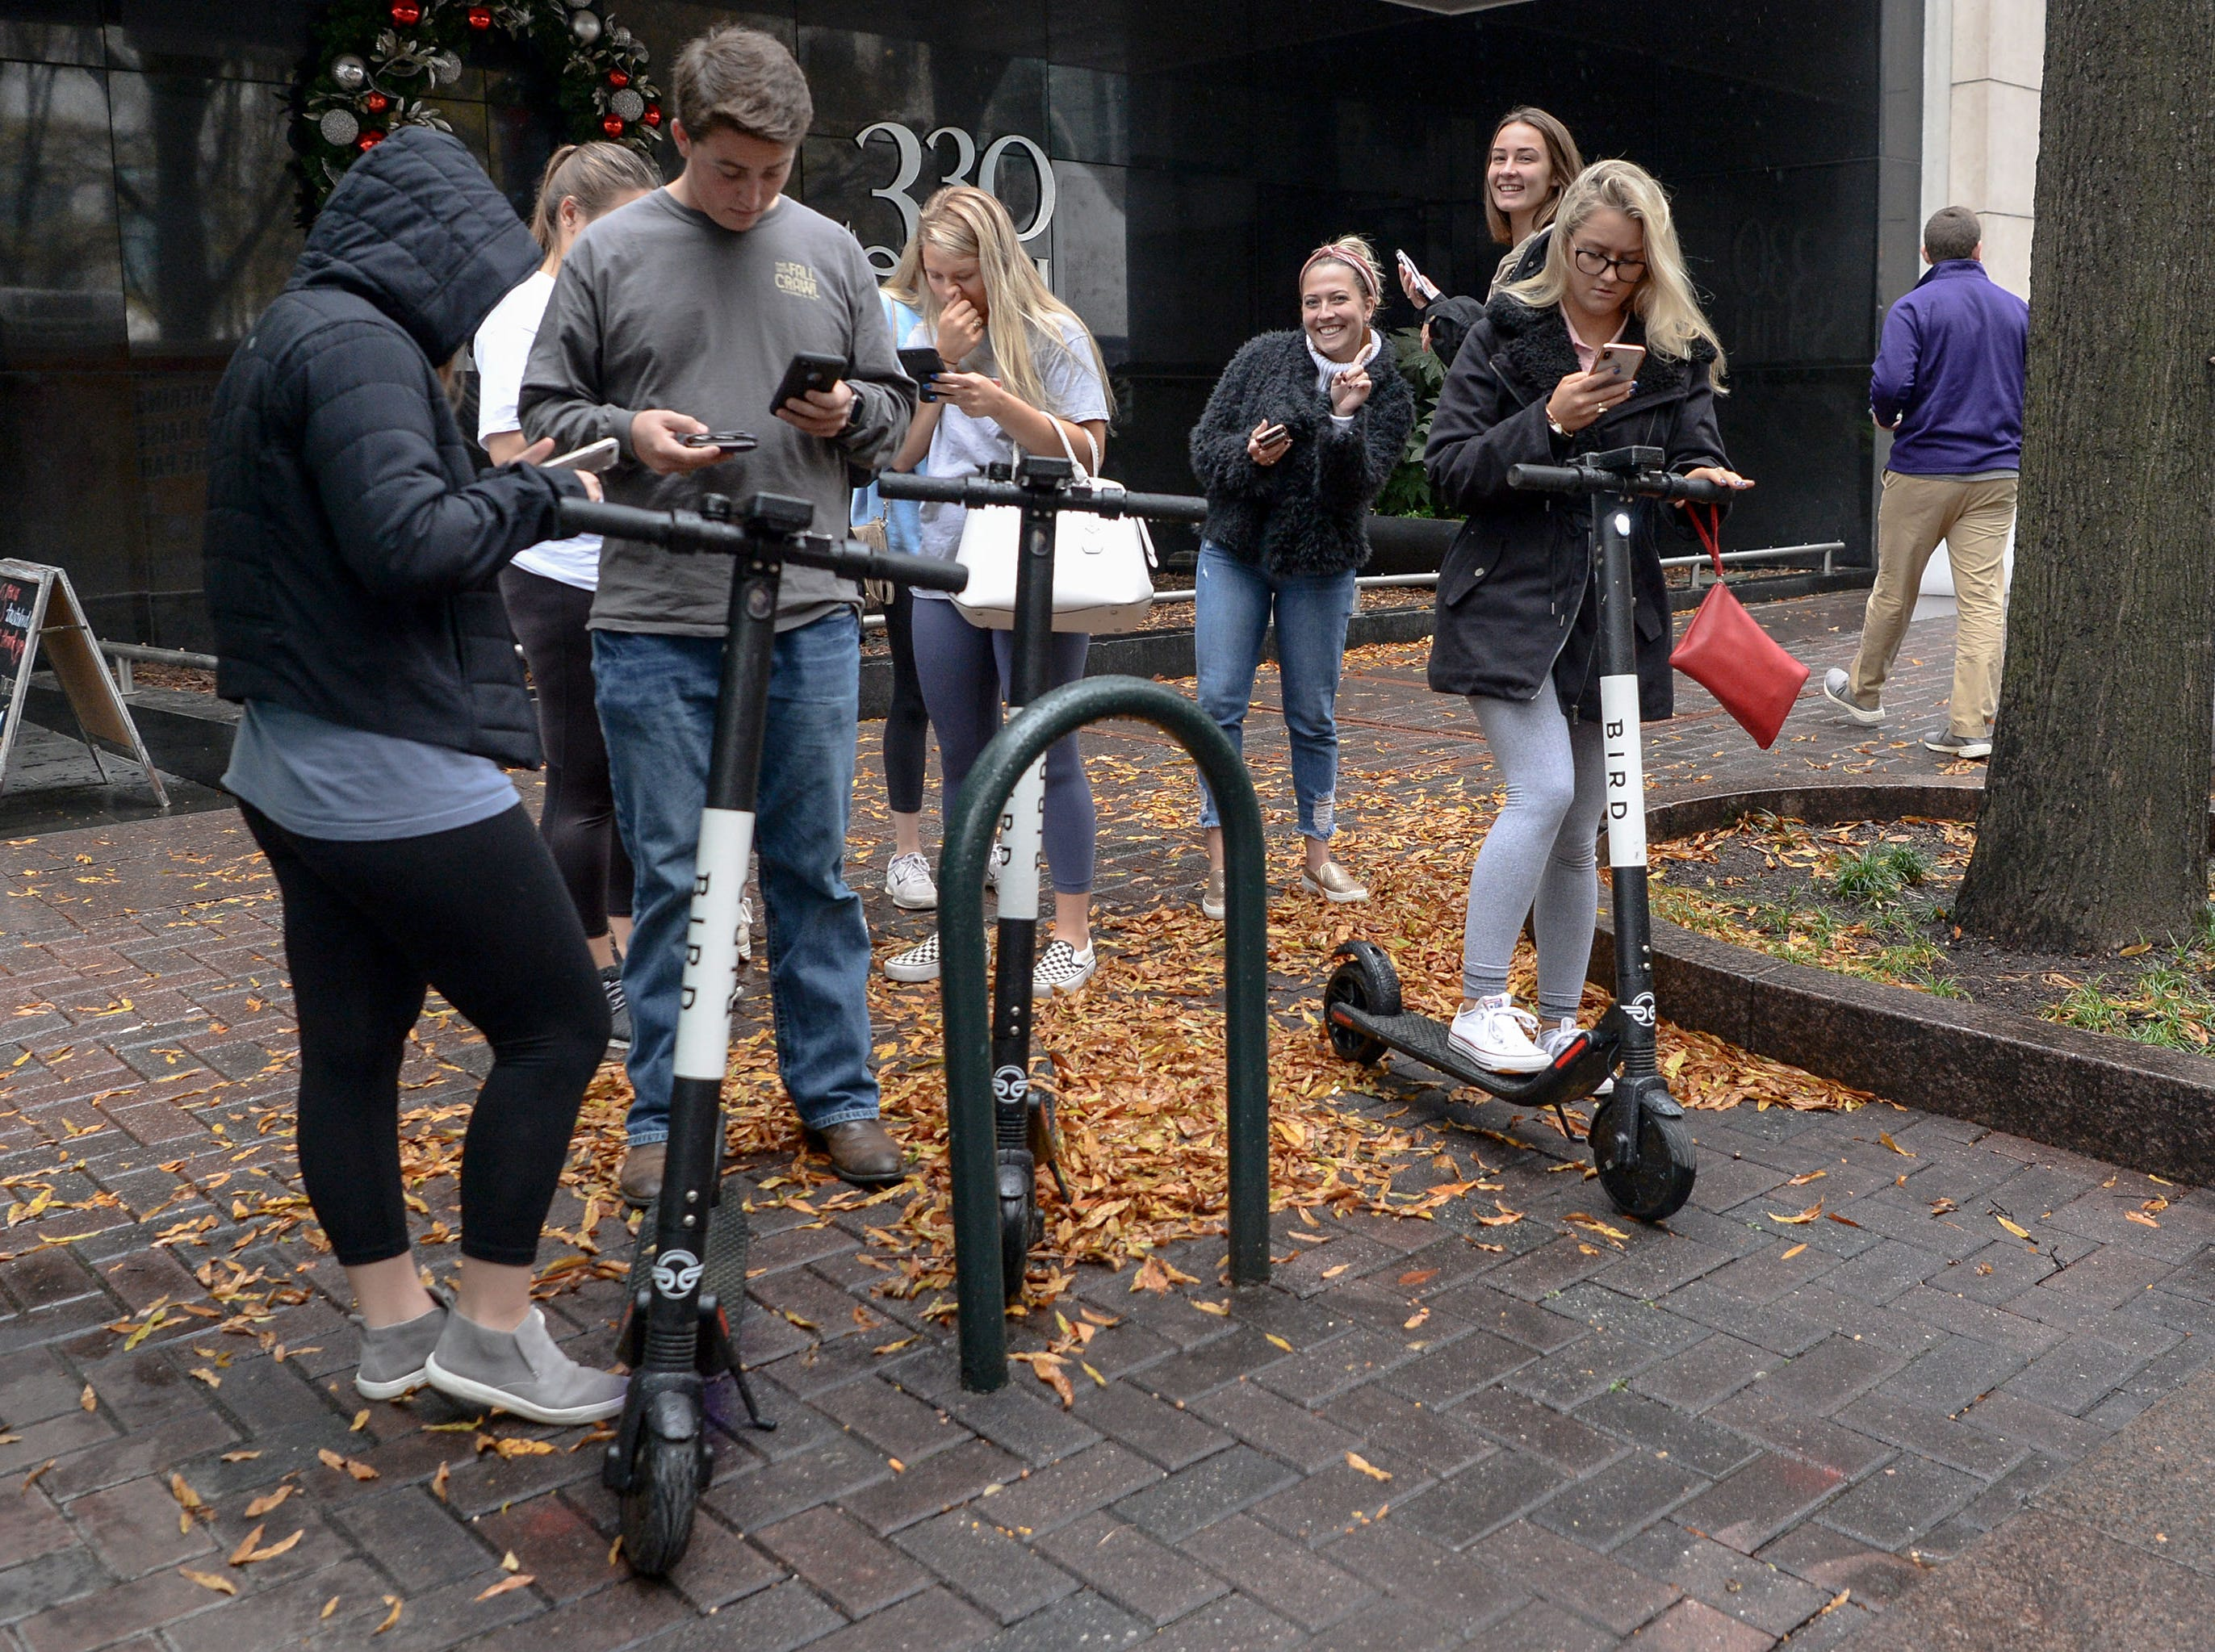 Fans rent scooters at the ACC Fan Fest in downtown Charlotte on Saturday, December 1, 2018.